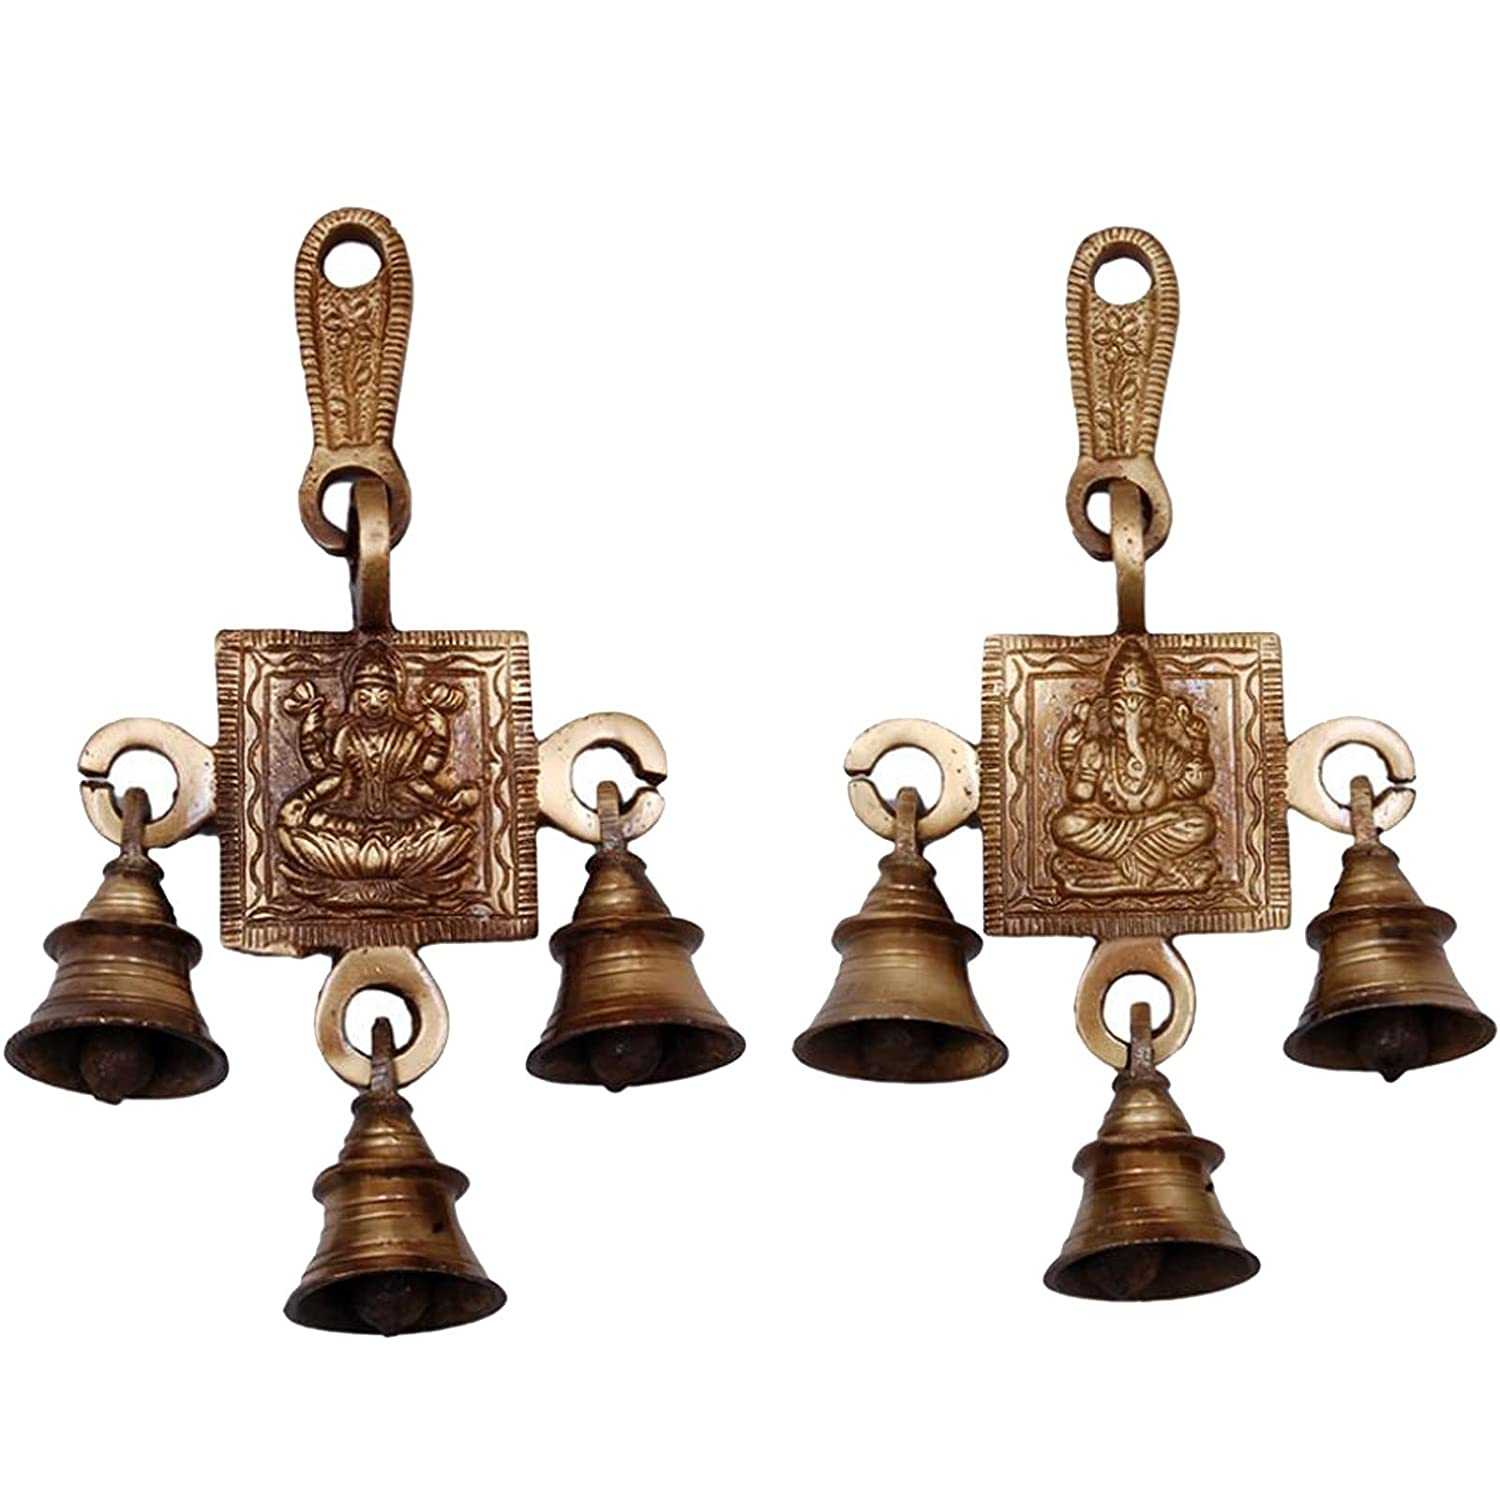 Aakrati 3 Bells Brass Hanging Hindu God Ganesha and Goddess Laxmi Ji Statue Engraved for Luck Home Temple Use - Ganesha Laxmi Statue Hindu Idols Figure with Hanging Bells Unique for Door and Wall